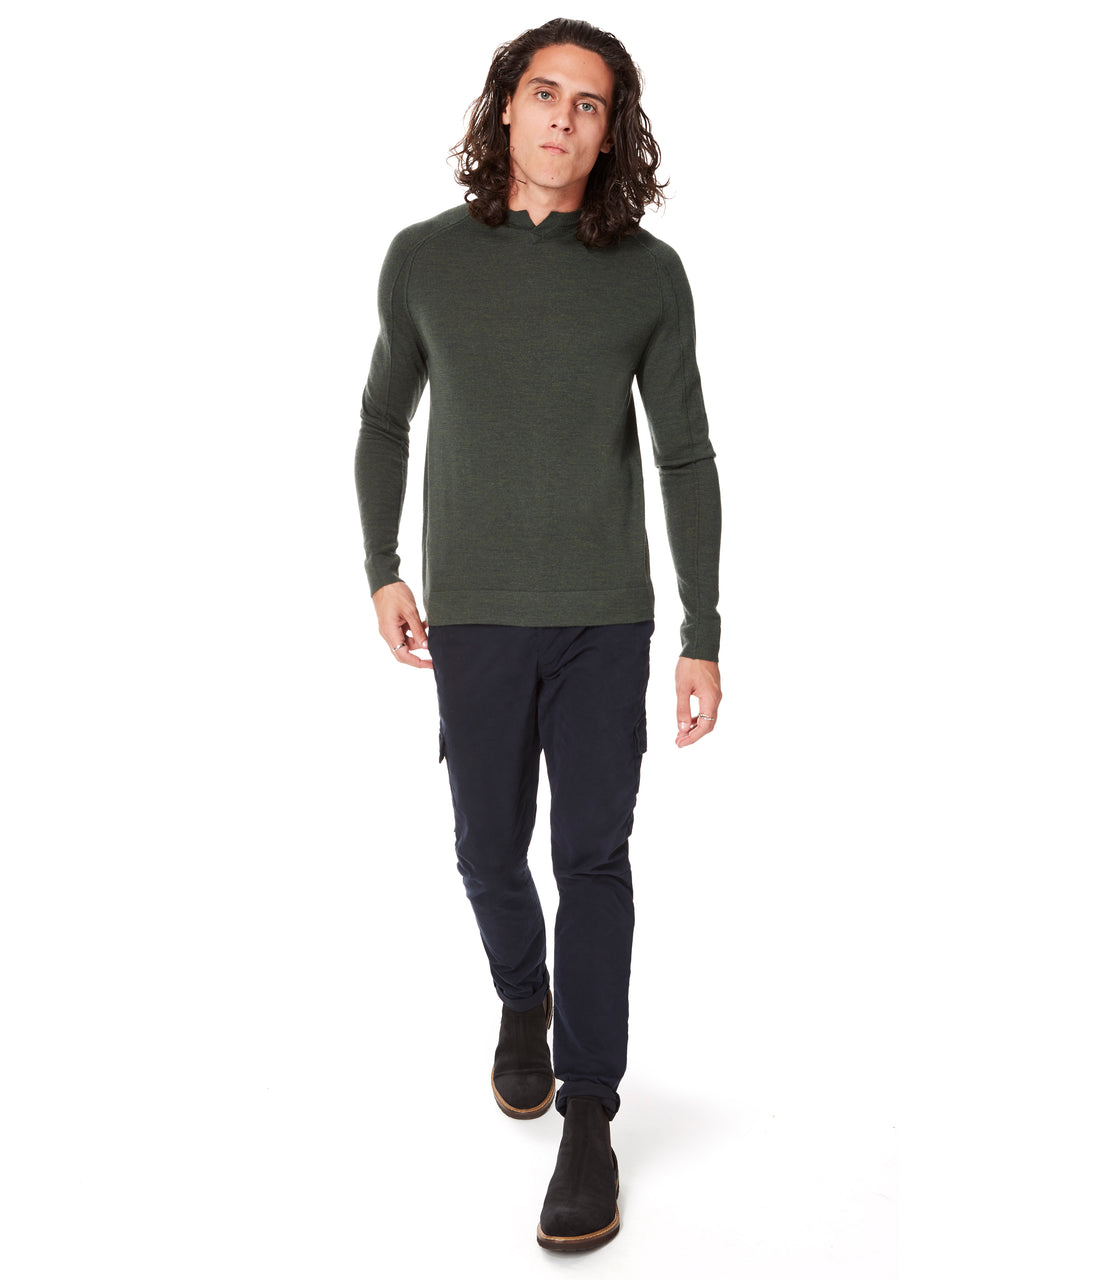 MVP V-Notch Sweater - Garden - Good Man Brand - MVP V-Notch Sweater - Garden